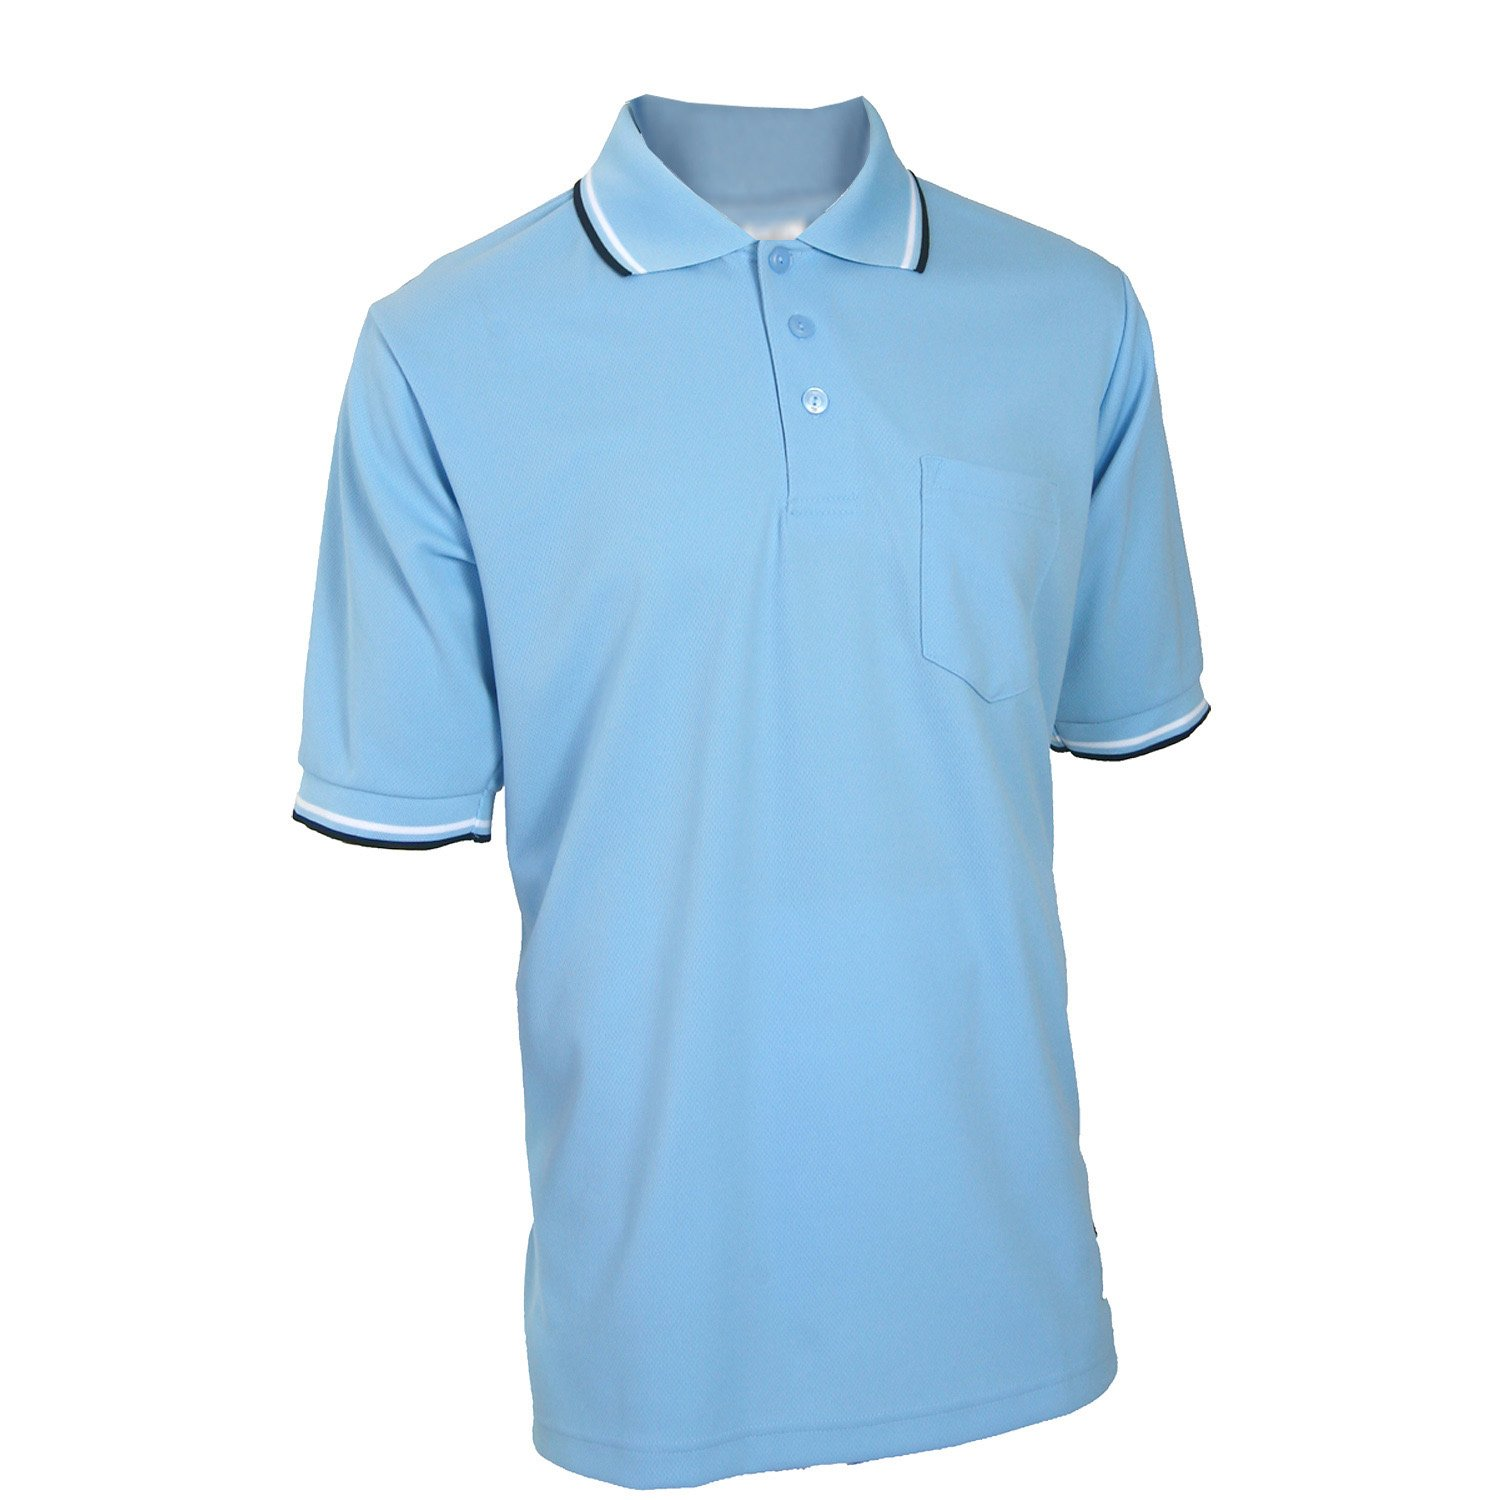 Adams USA Smitty Major League Style Short Sleeve Umpire Shirt with Front Chest Pocket (Powder Blue, 4X-Large)